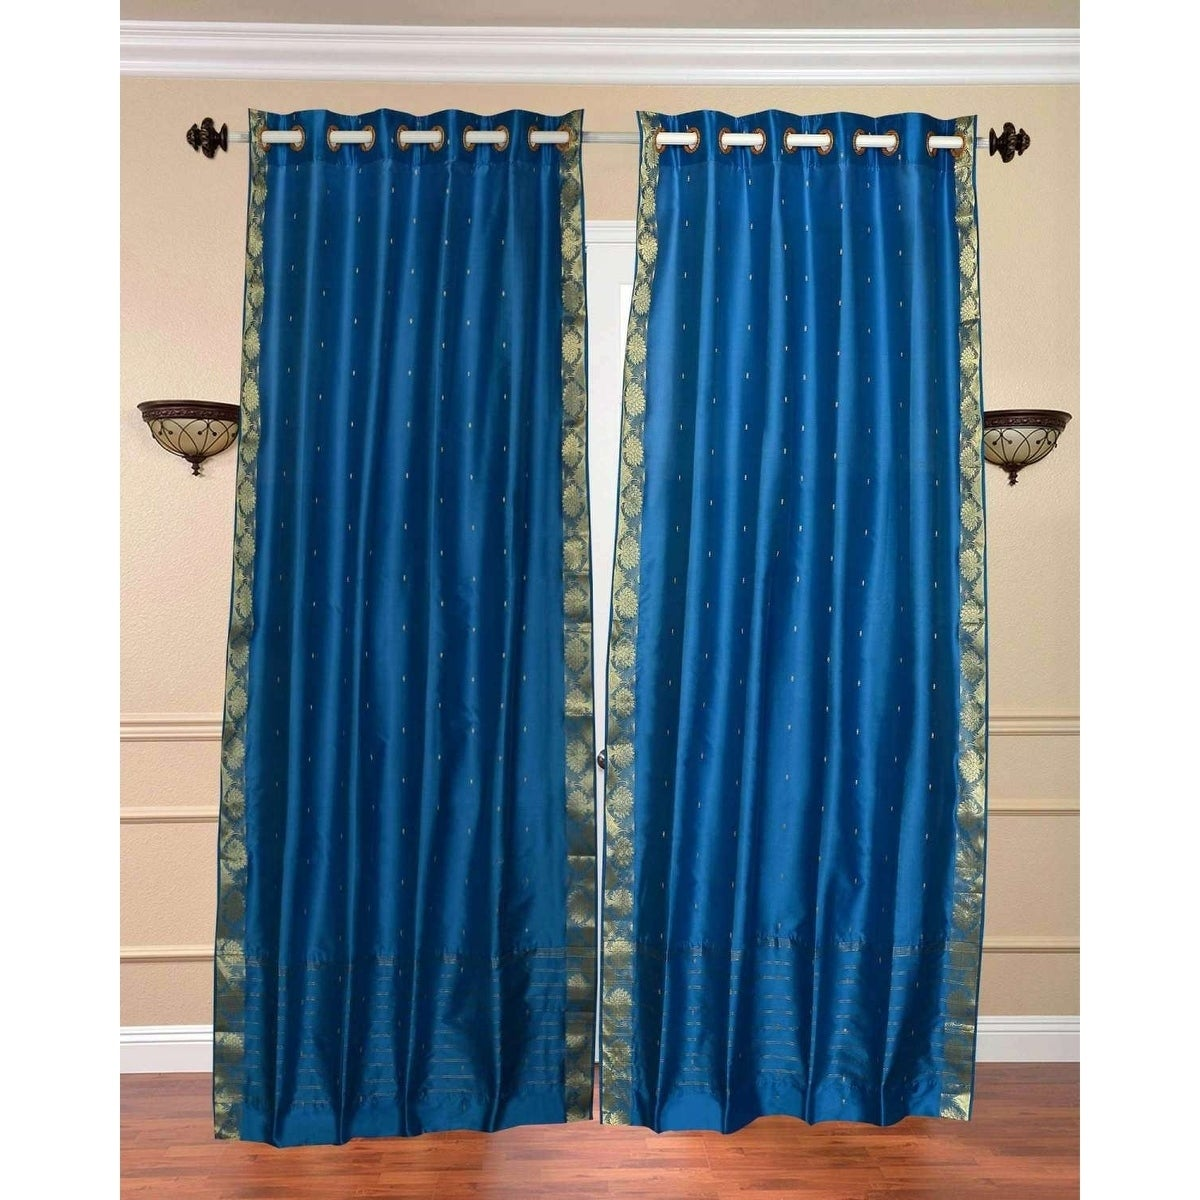 Piece Drape Island Blue  Tie Top  Sheer Sari Curtain Panel